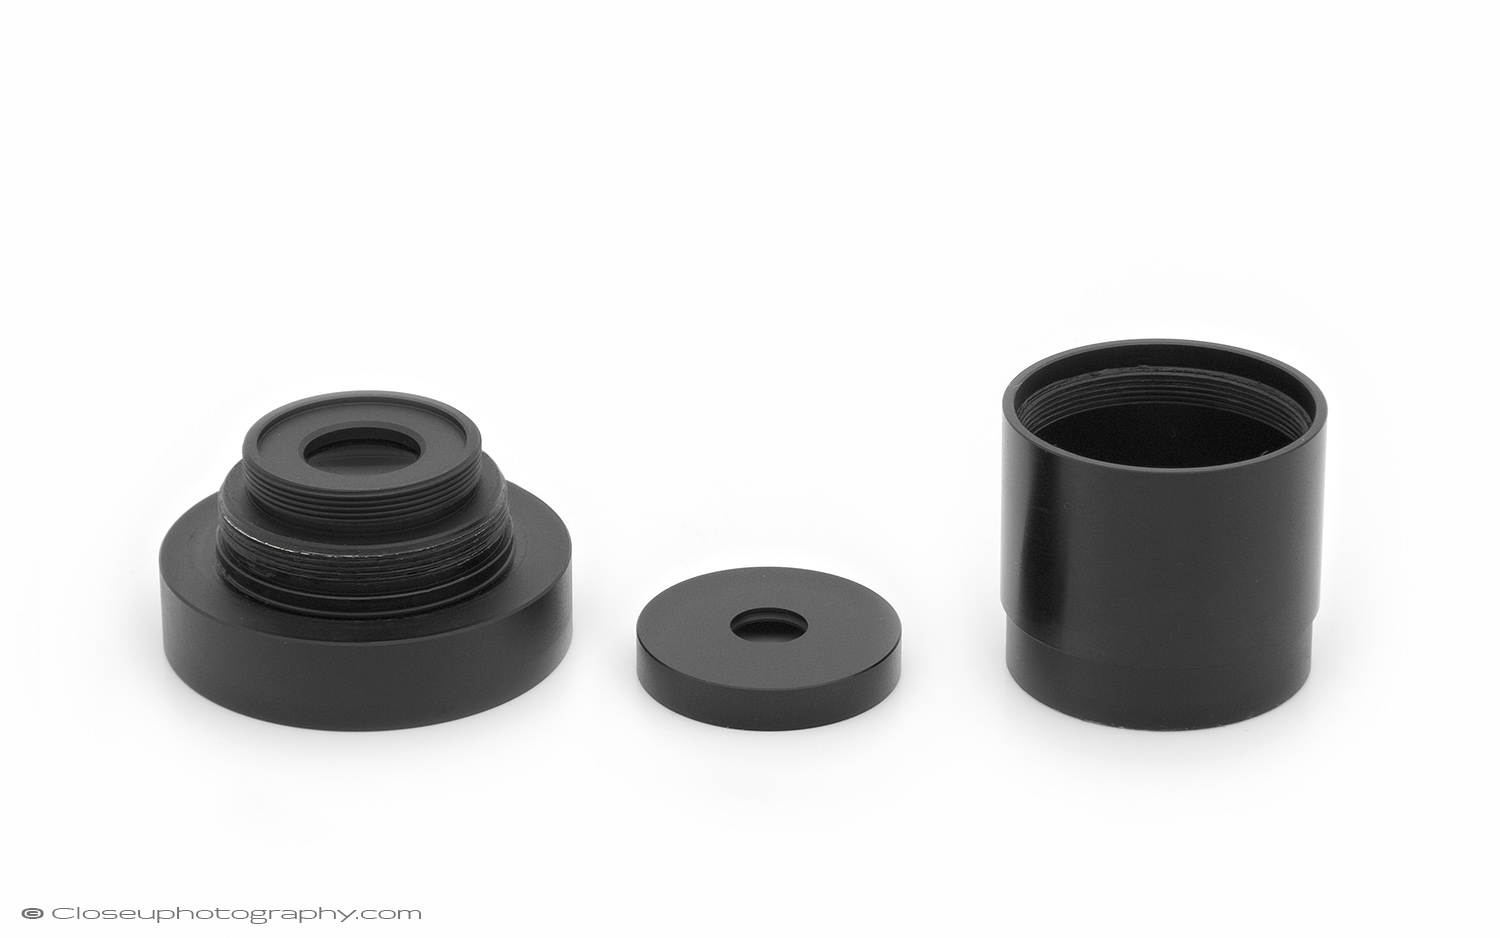 Copal E18C 40mm 1:4 Industrial Lens with rear cell and aperture disk removed